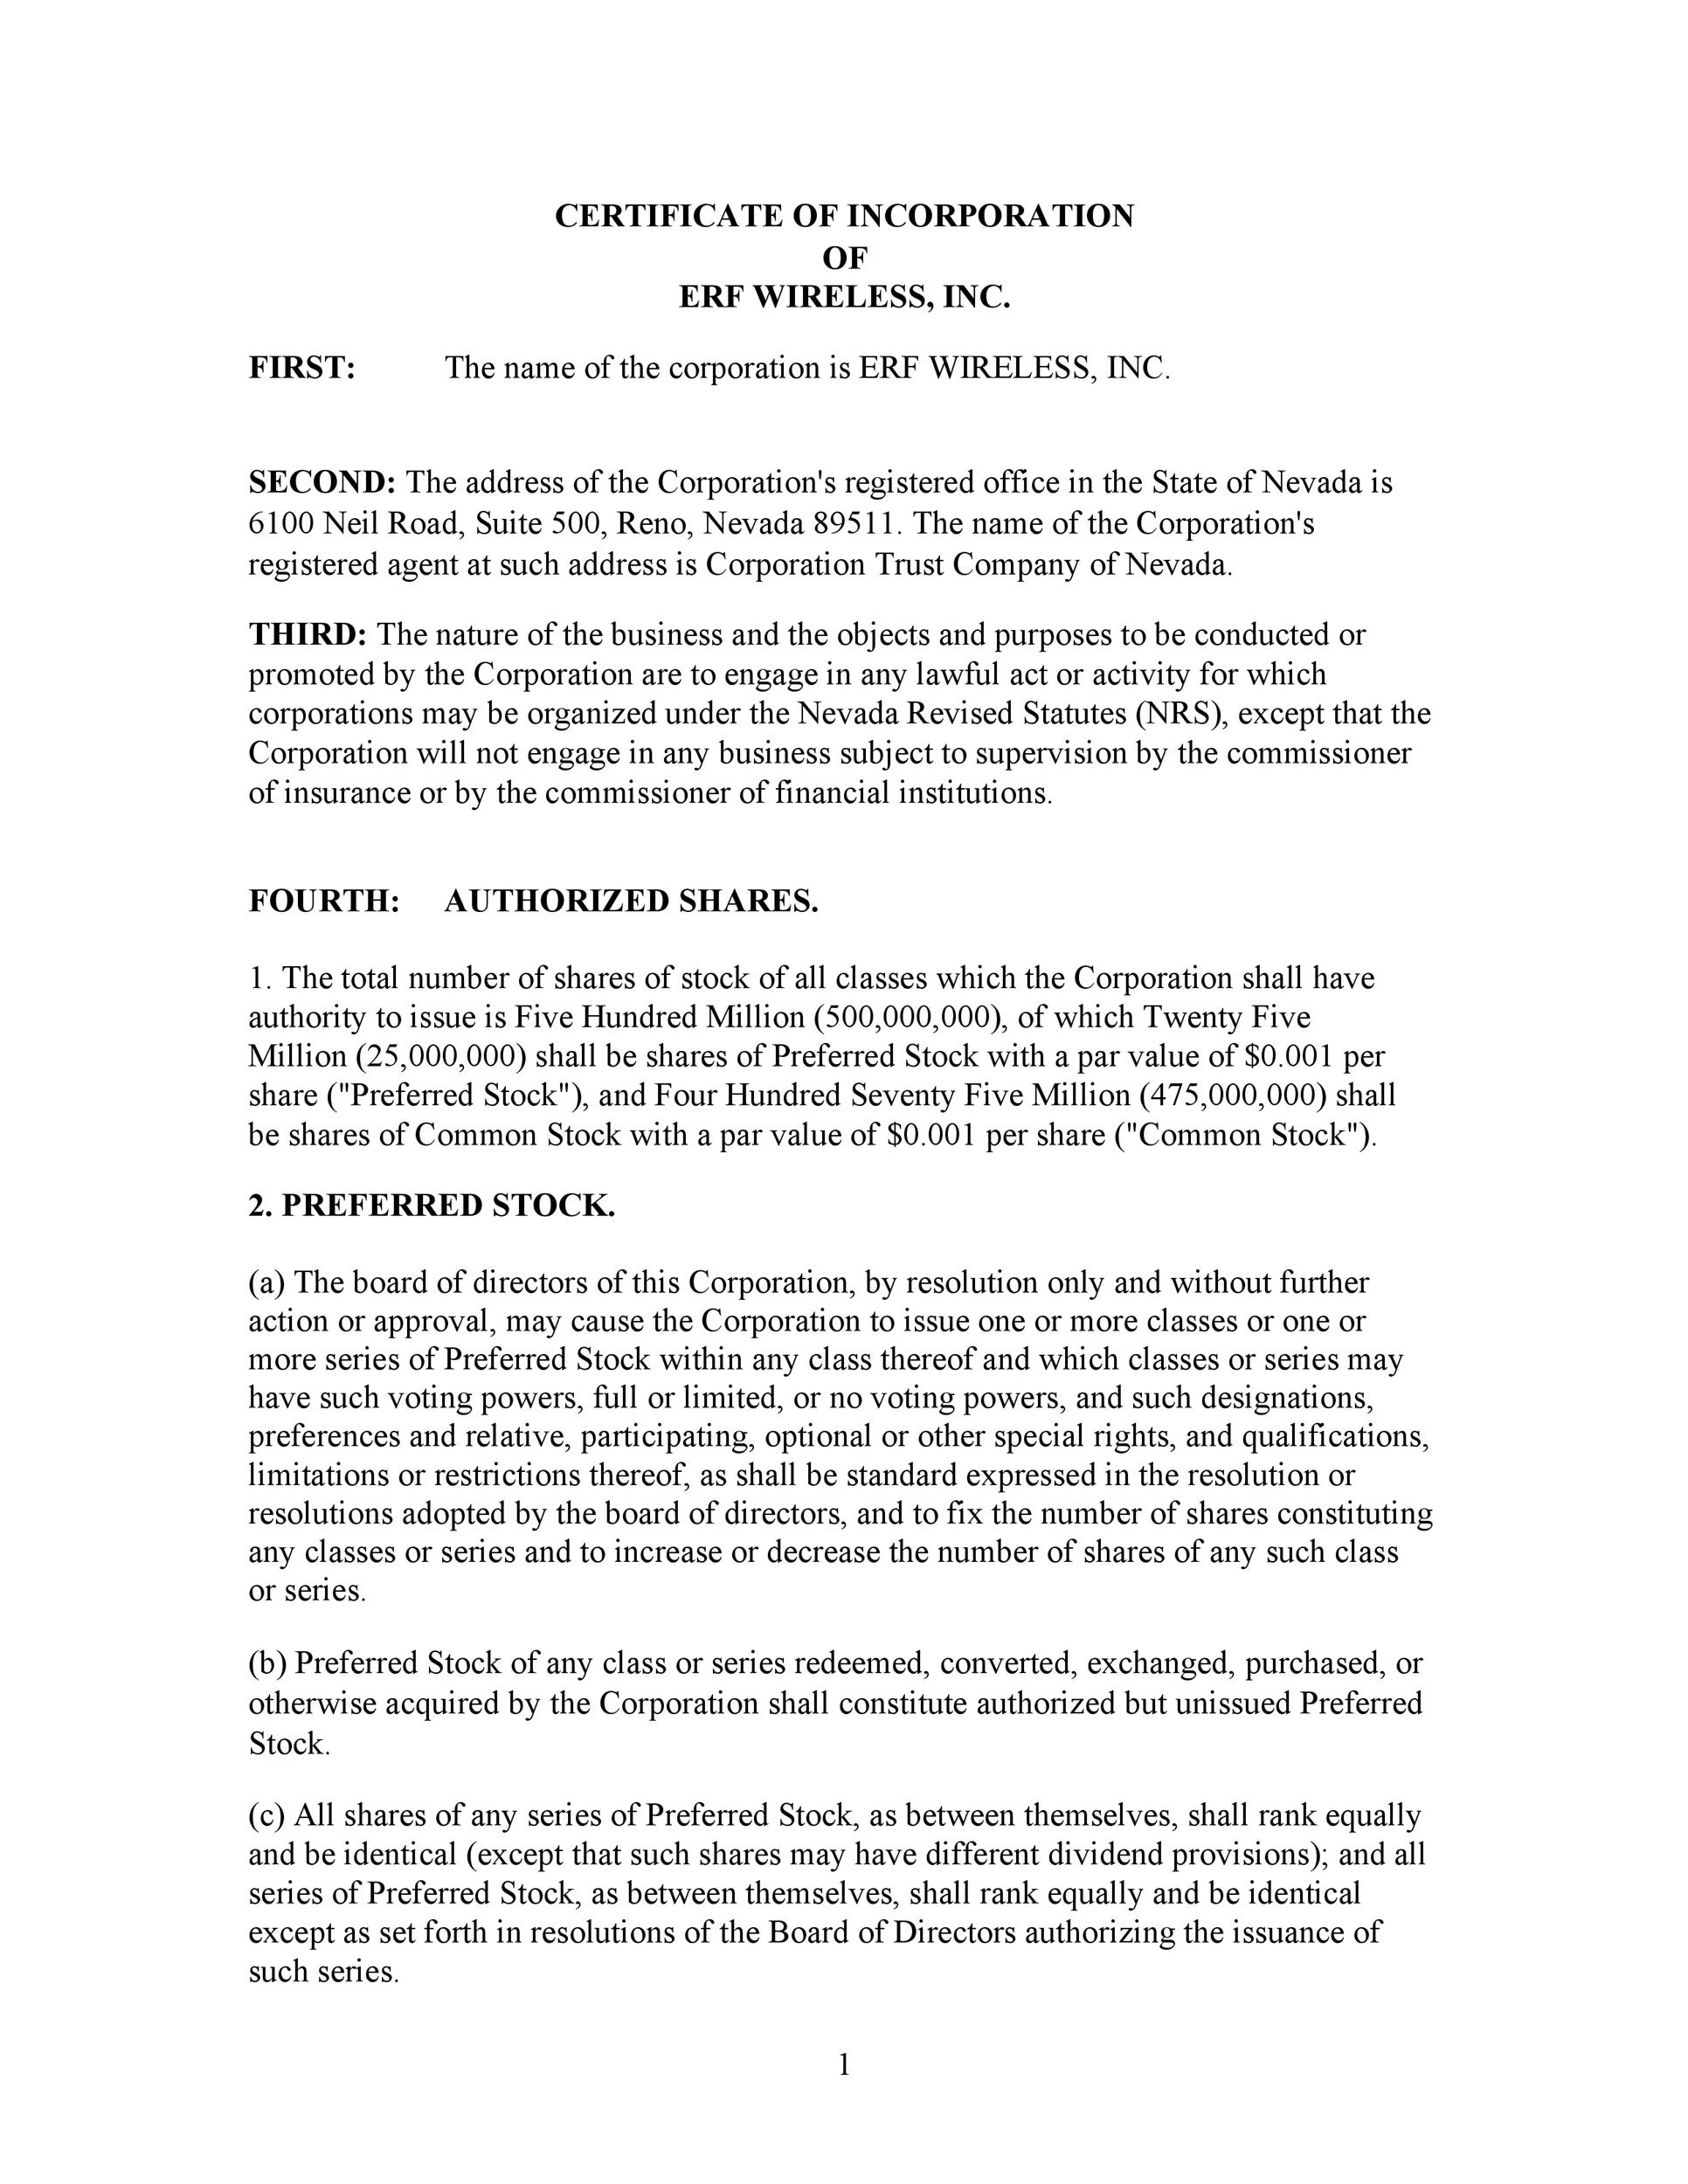 Free articles of incorporation template 46